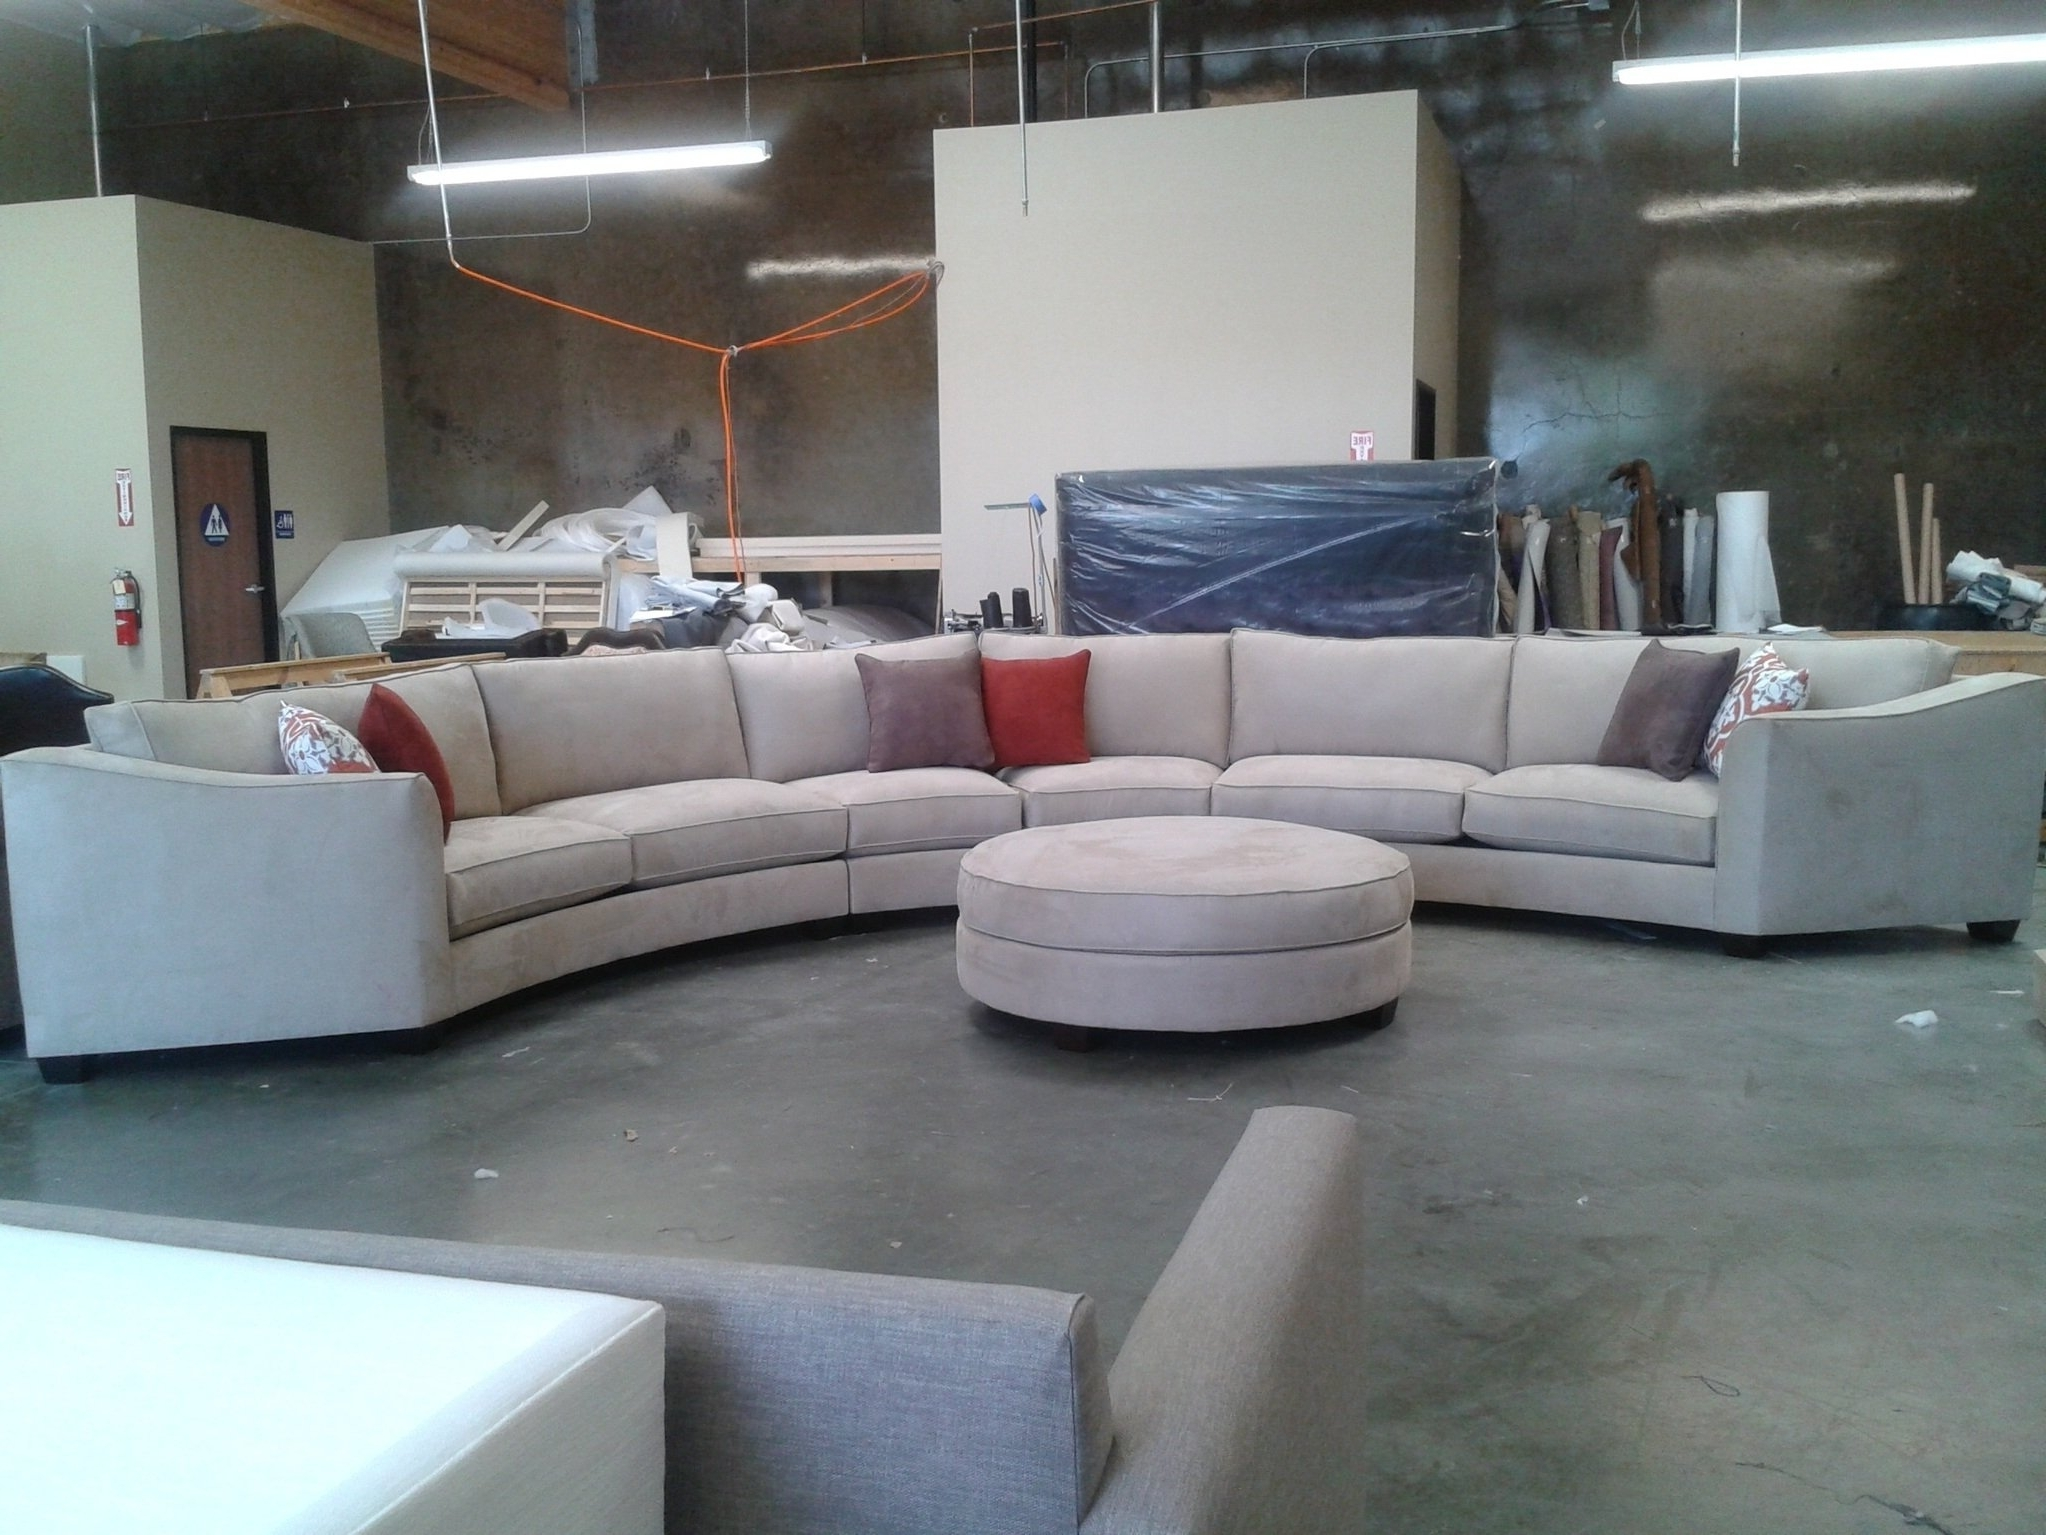 2017 Circular Sectional Sofas For Curved Sectional Sofa Set Rich Comfortable Upholstered Fabric In (View 1 of 15)